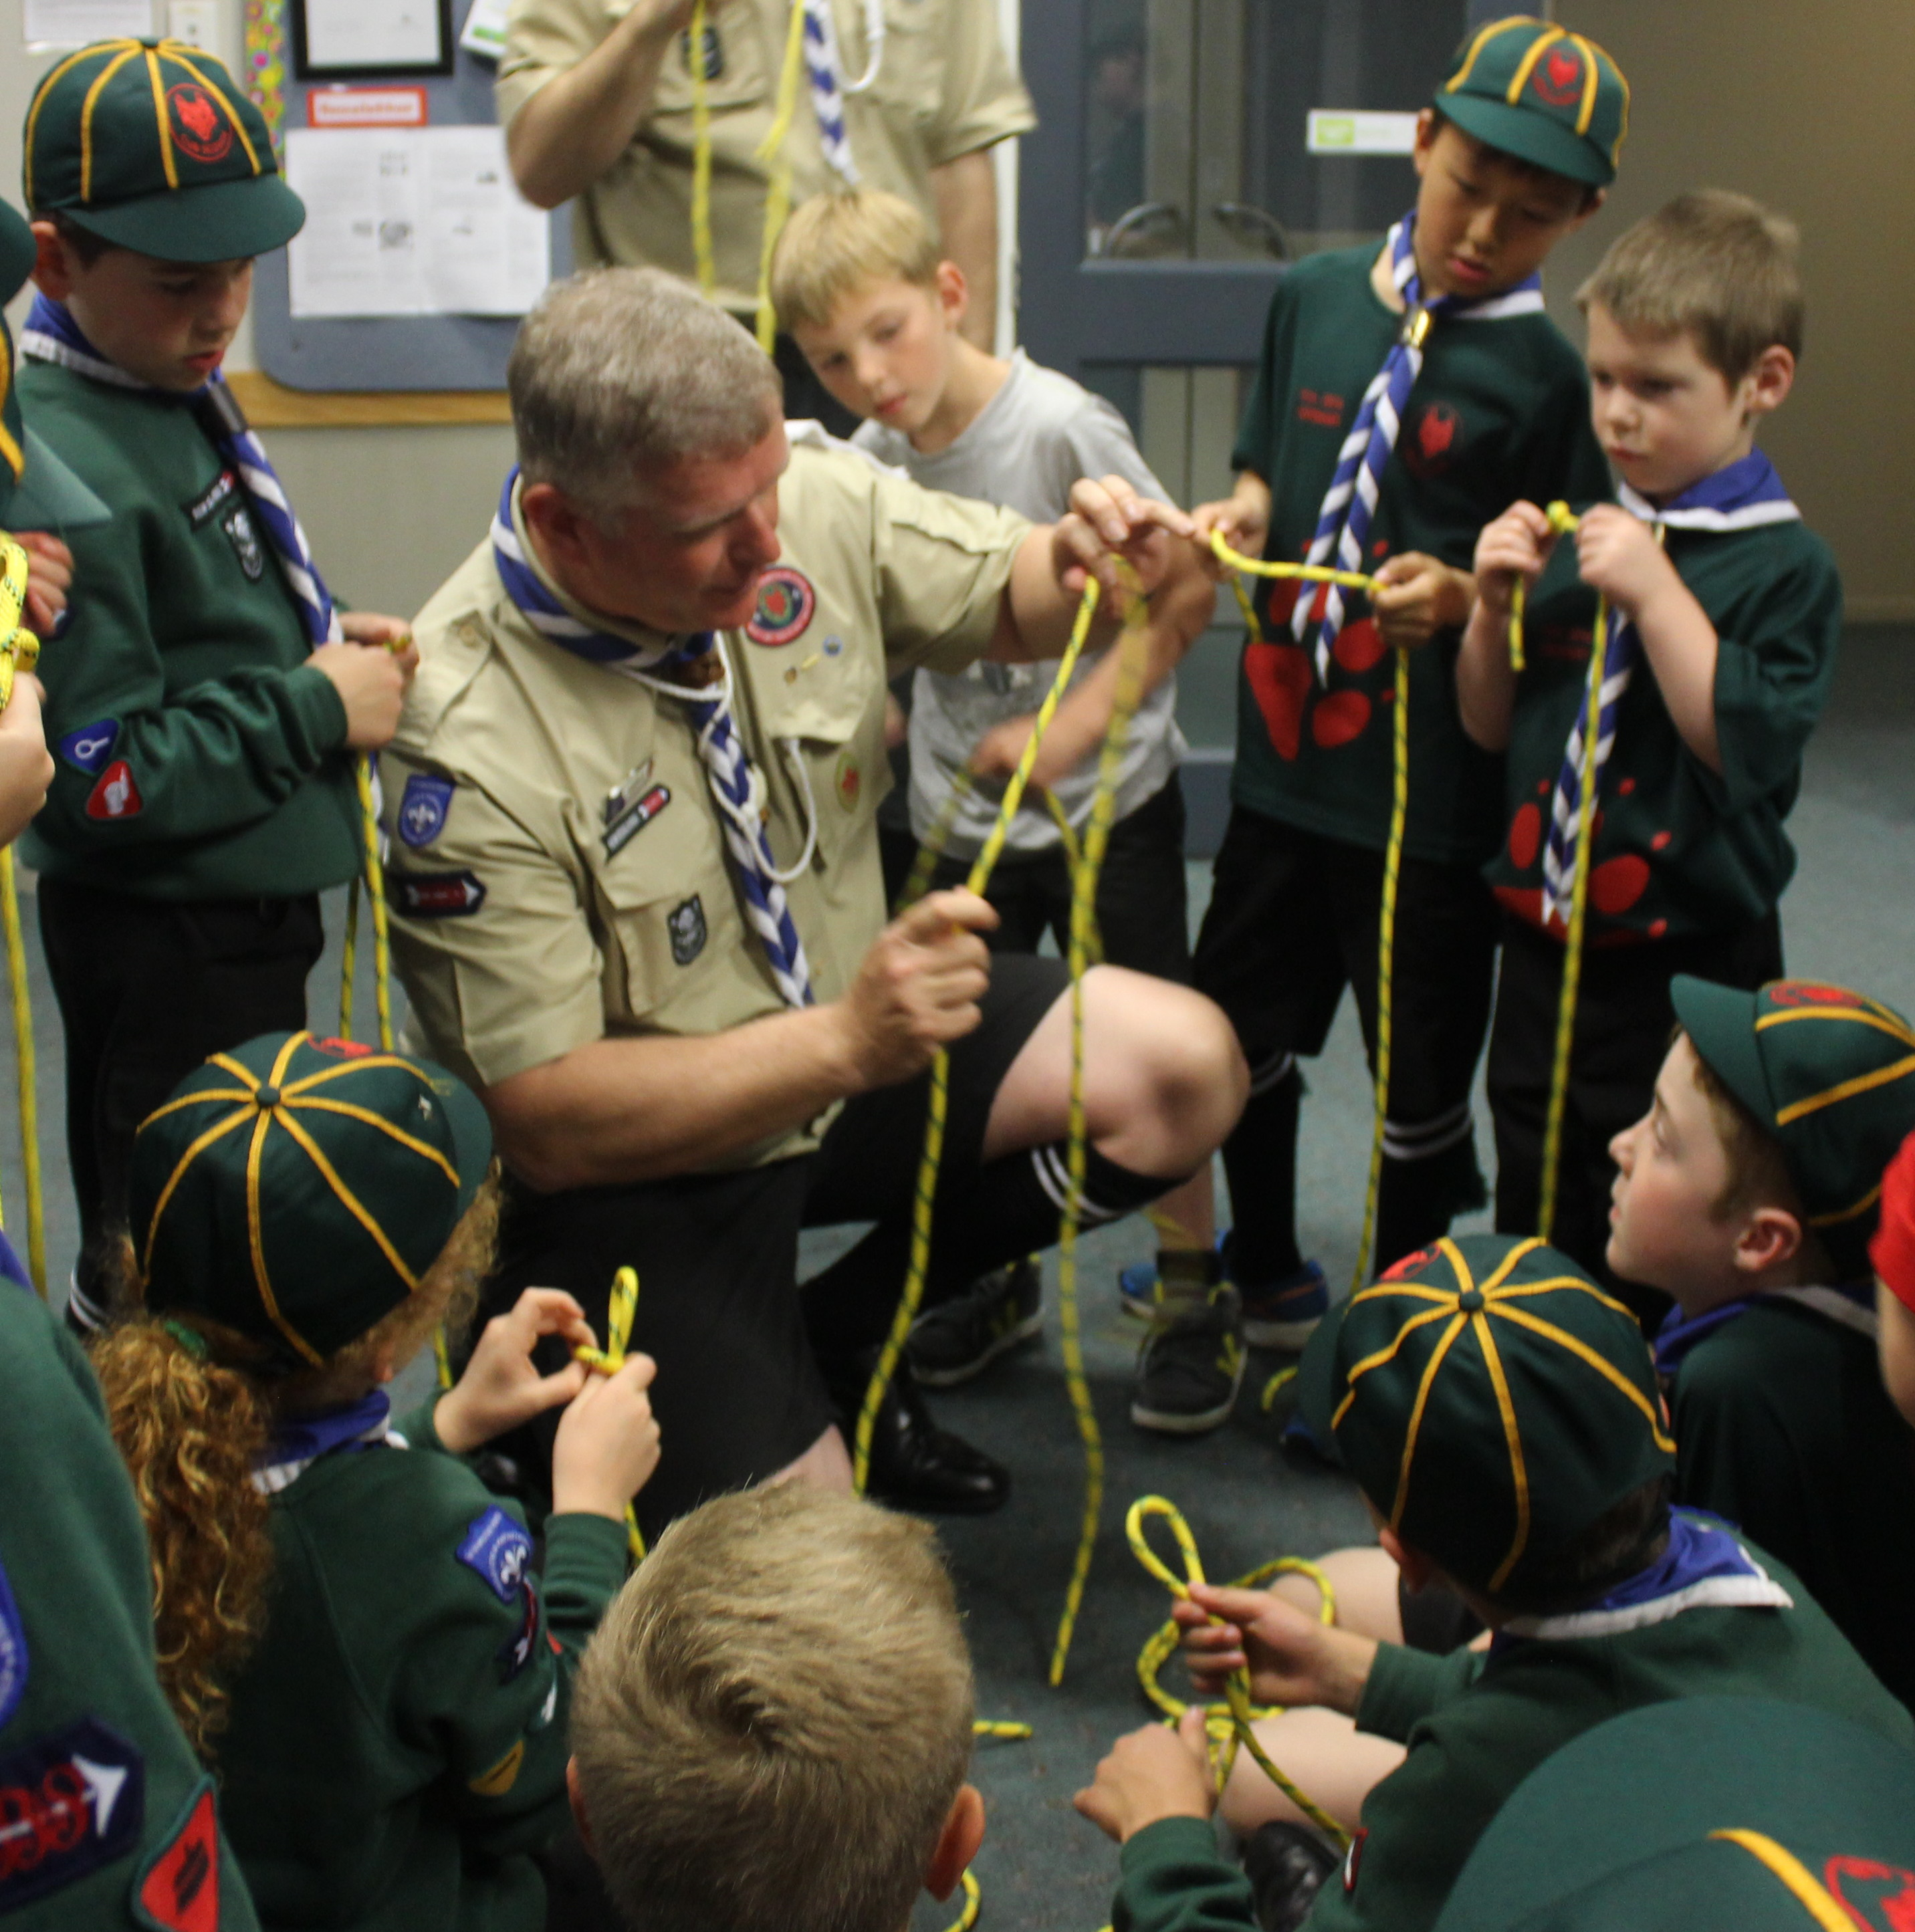 Paul Nimmo, Akela, demonstrating Knot-tying activity to the cubs Photo by: Maxx Alcobilla